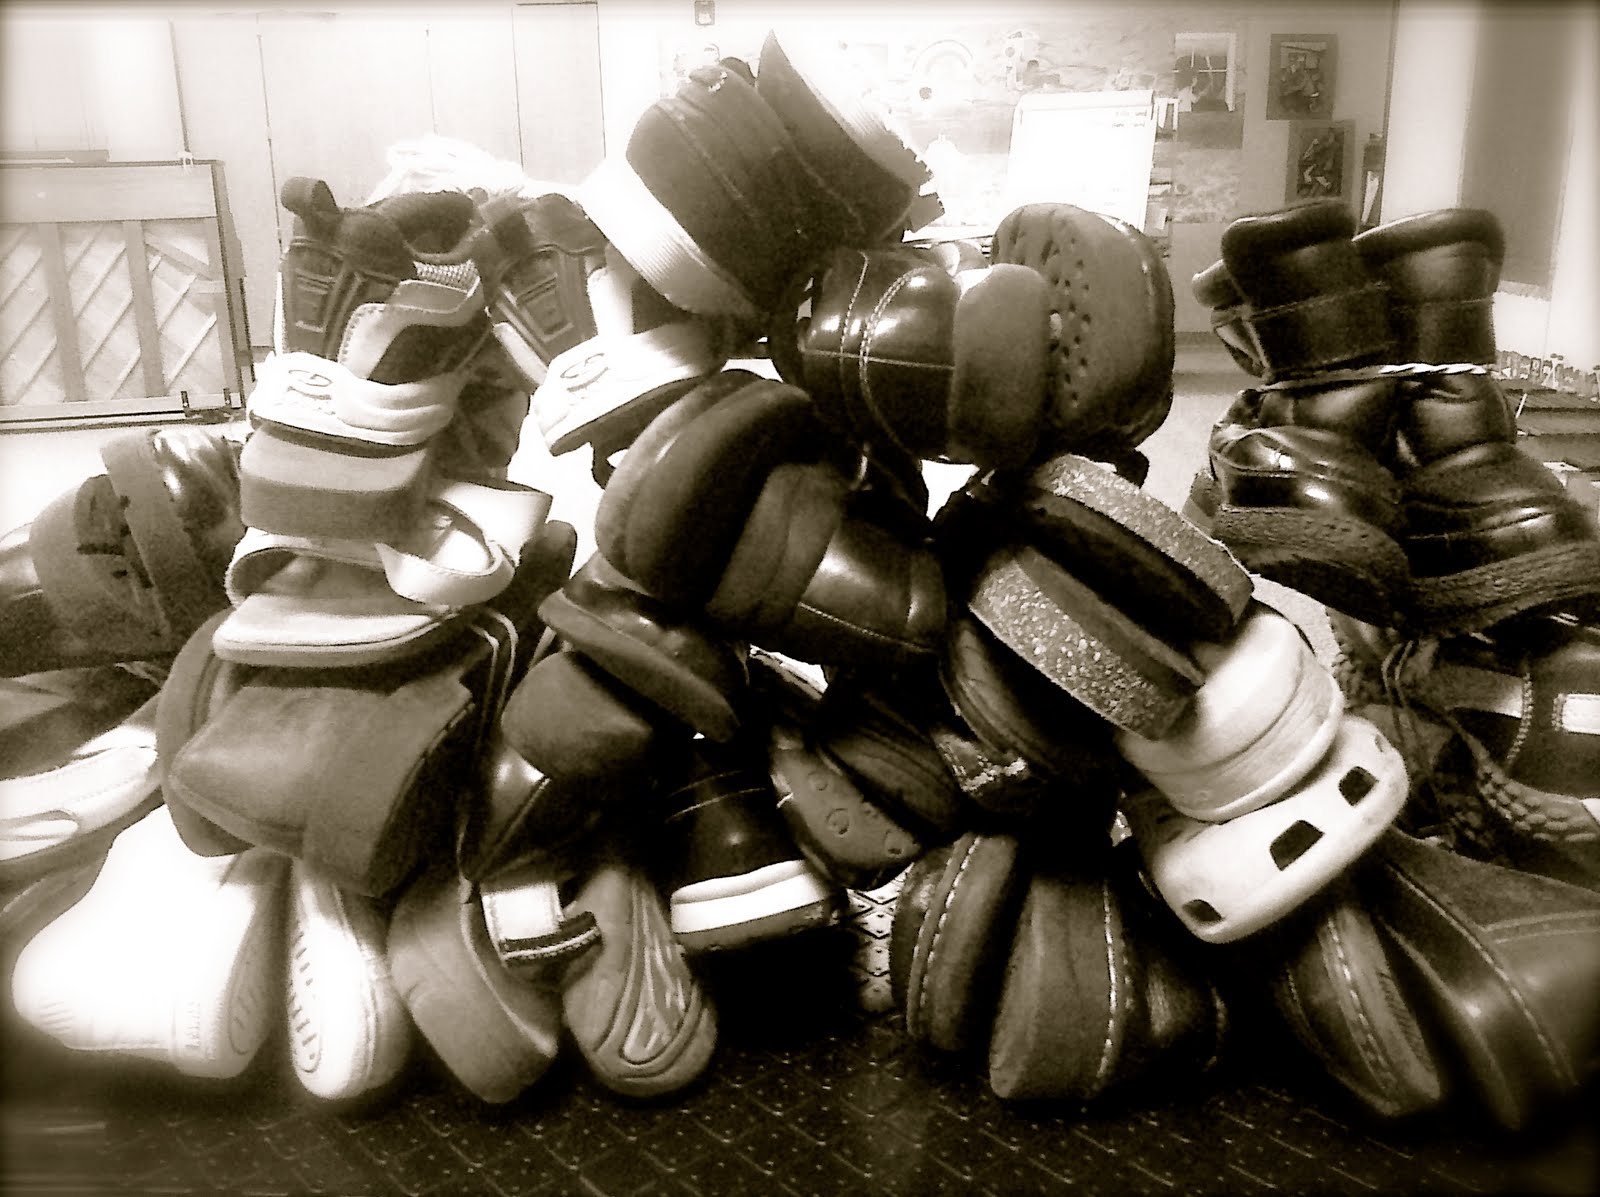 A big ole pile of SHOES!